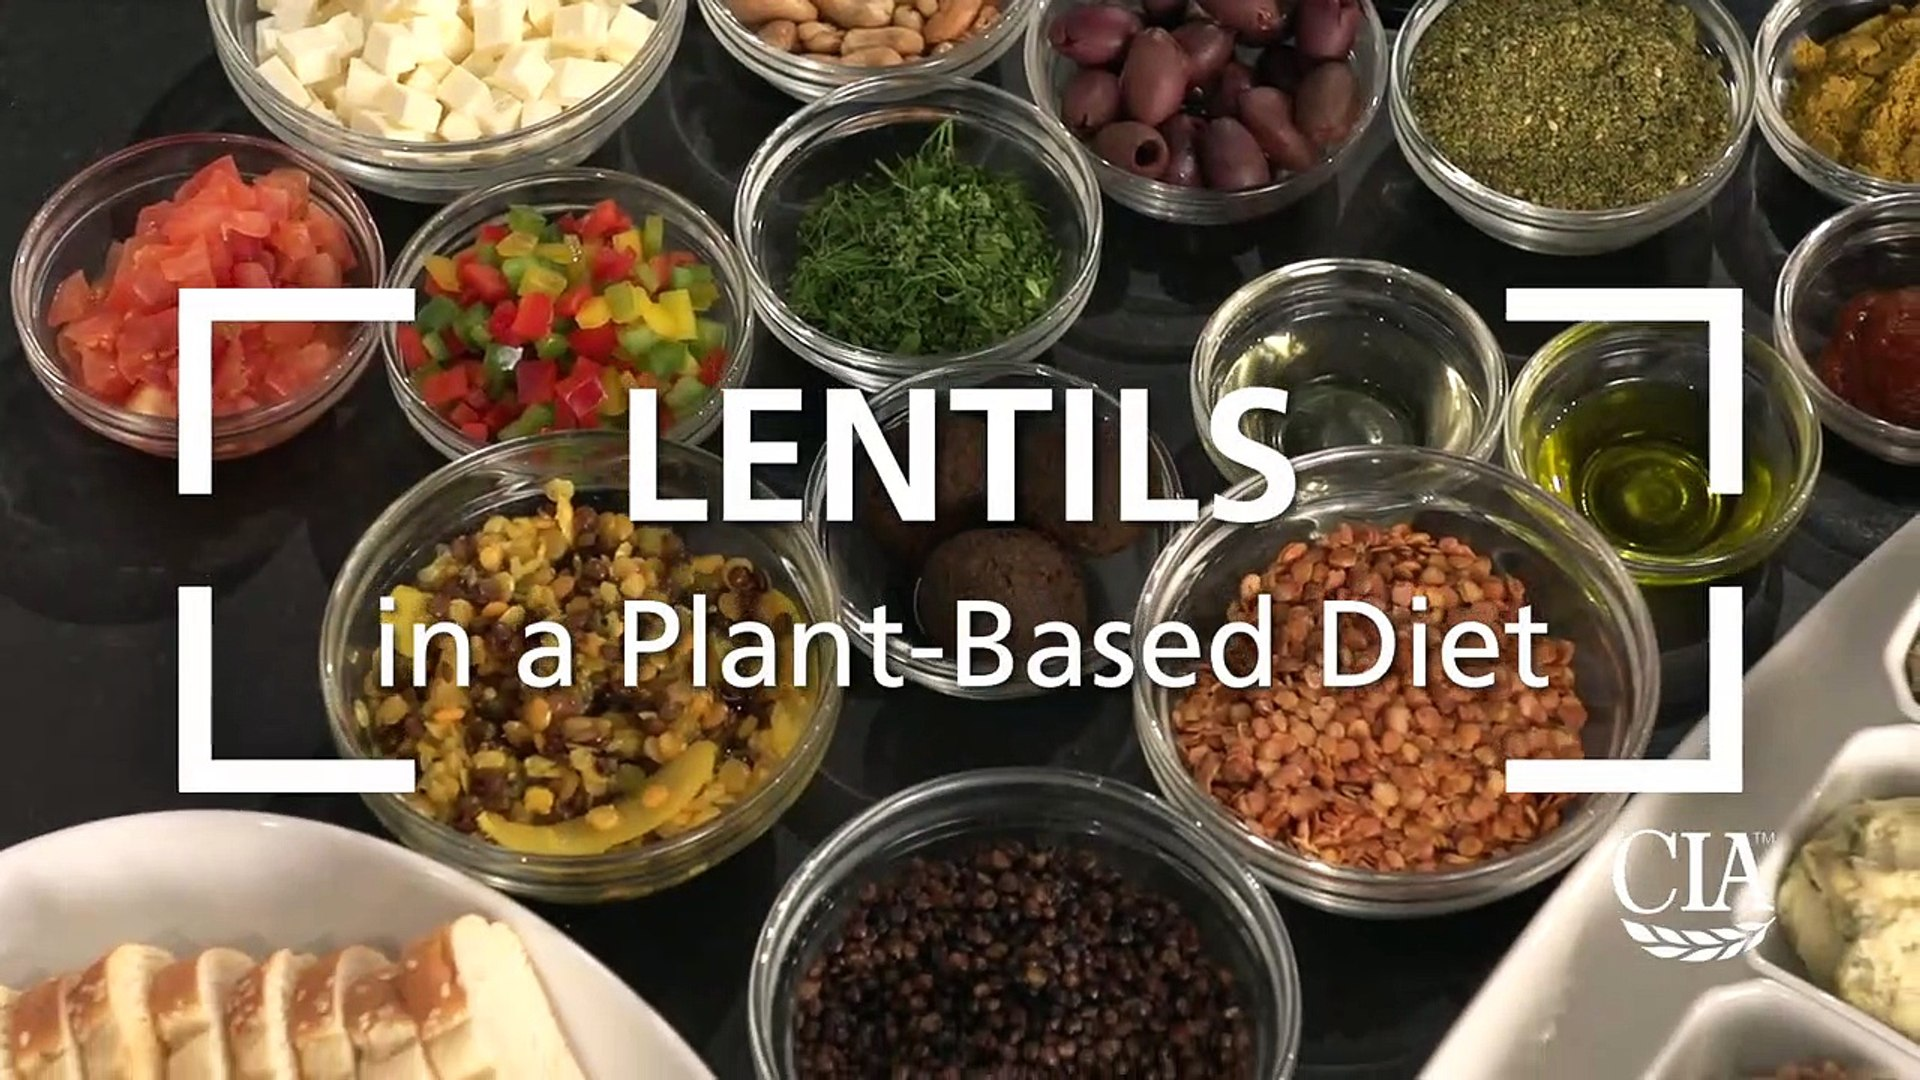 Lentils in a Plant-Based Diet - Lentil and Beet Burger-nJDRFn